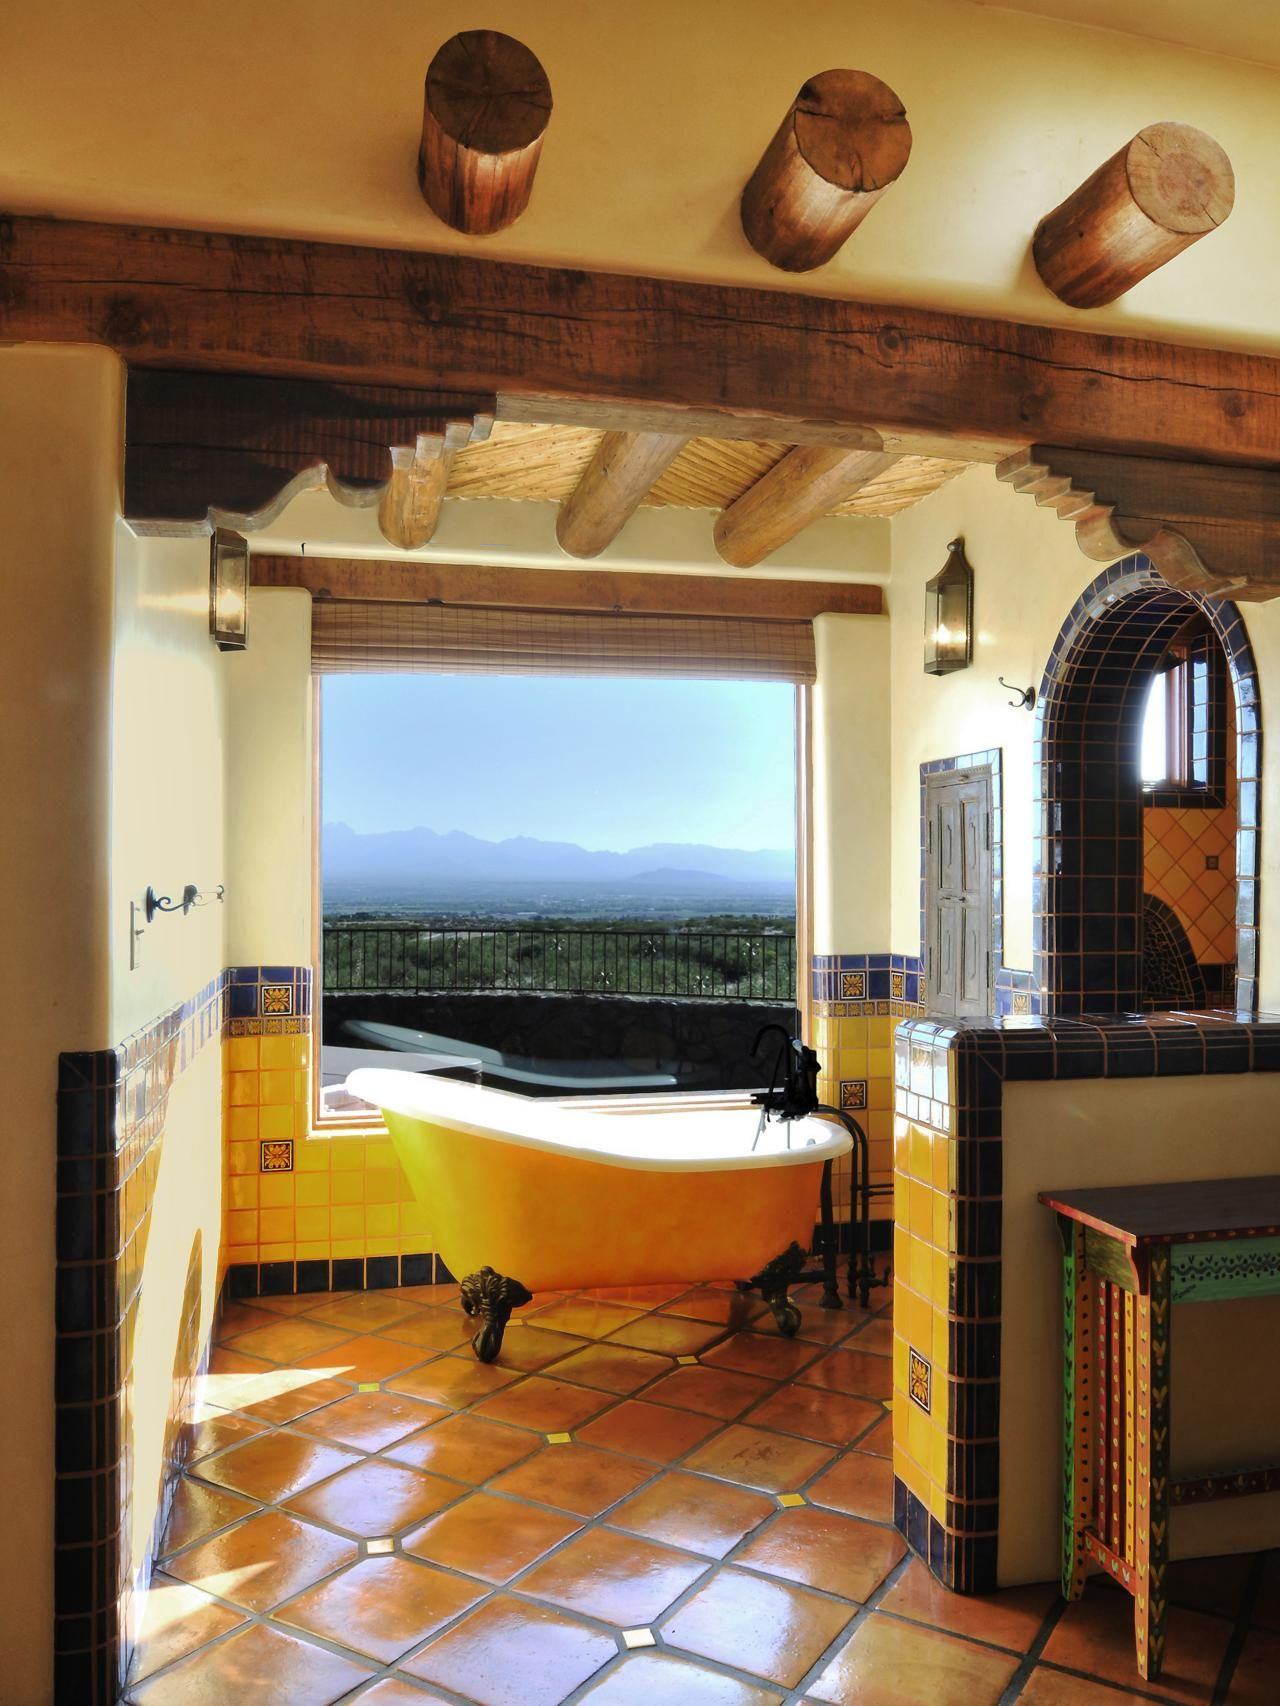 Charming Spanish Style Home Decorating Ideas Part - 2: Spanish-Style Decorating Ideas